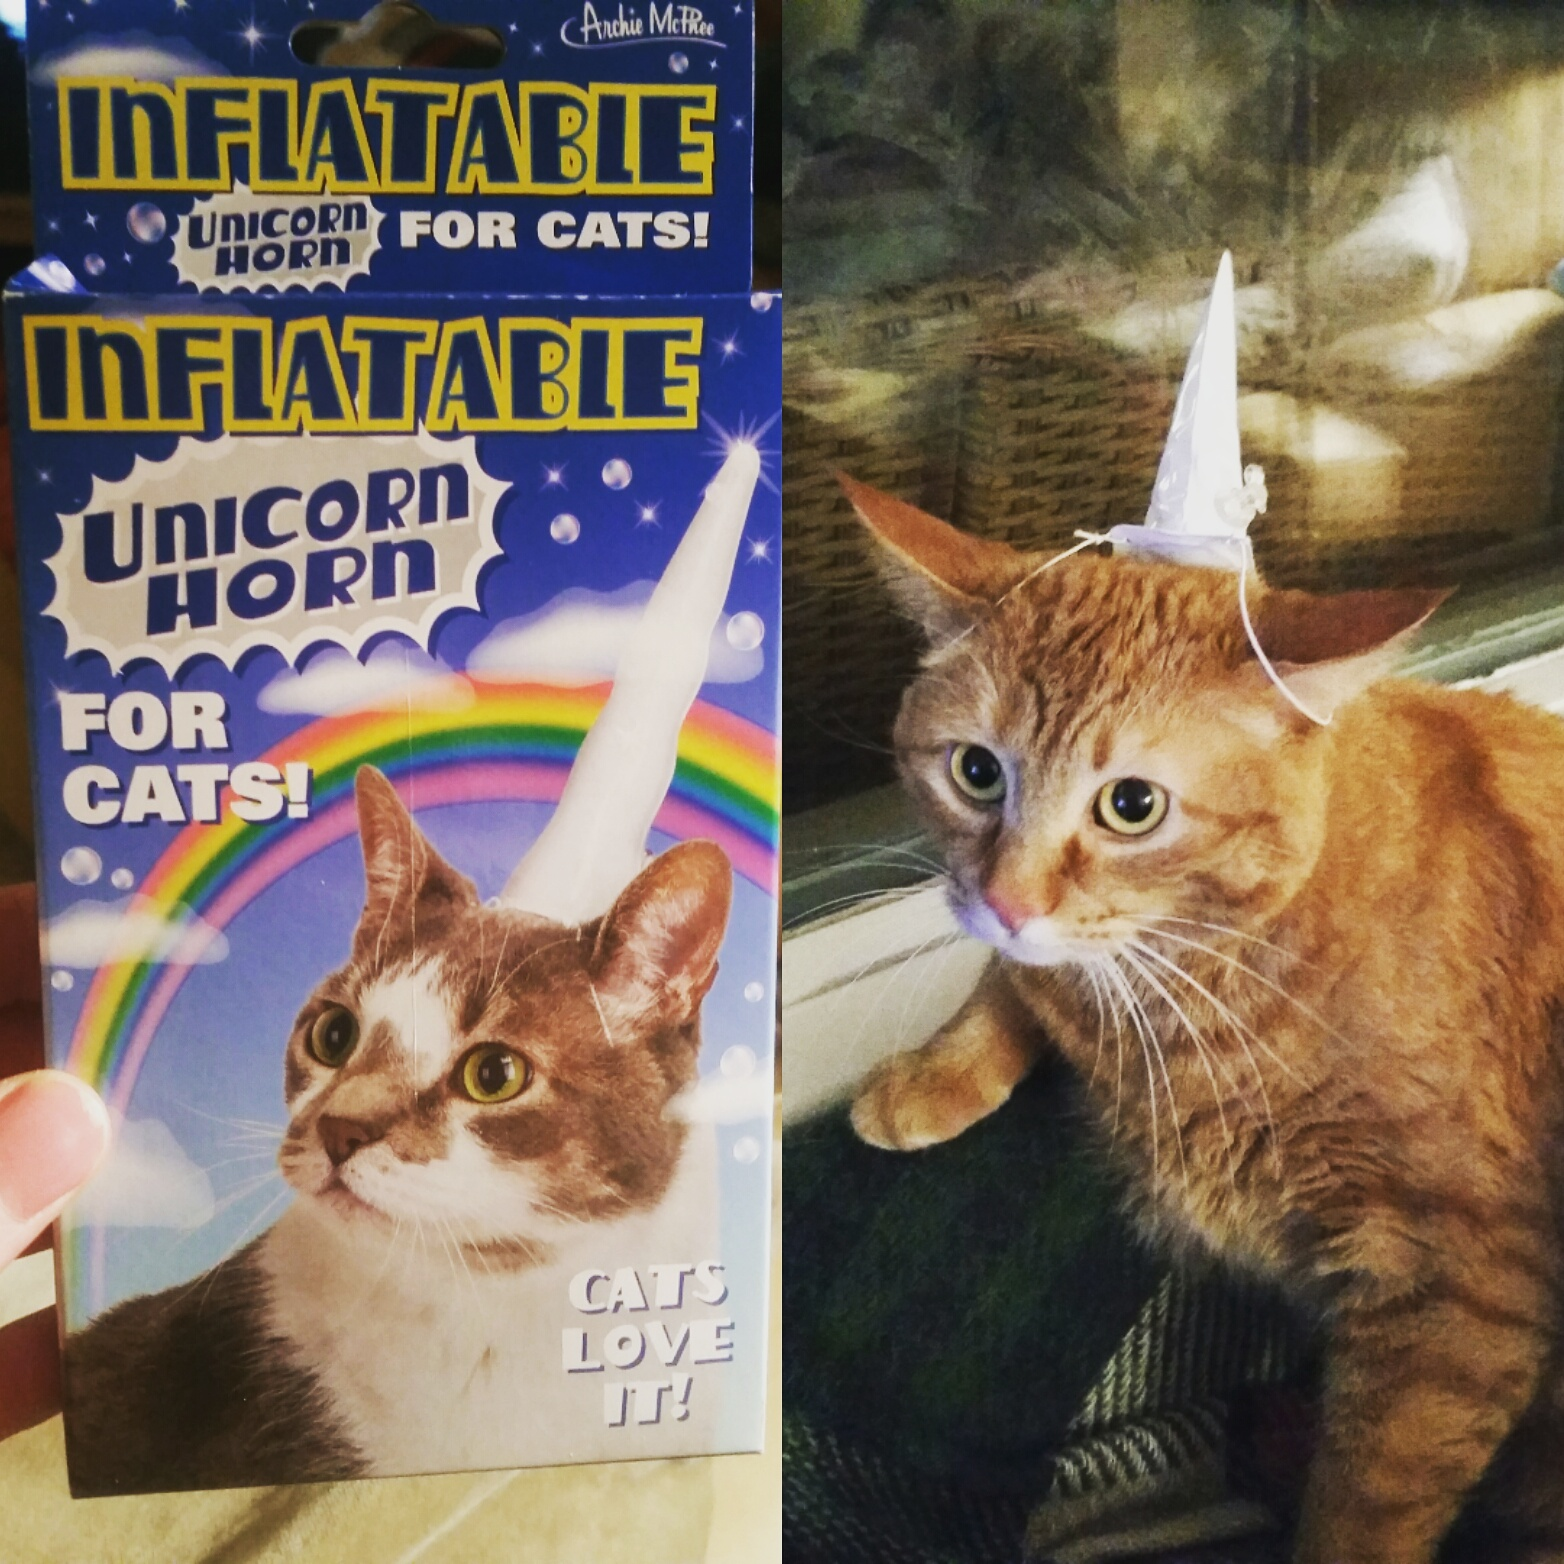 Inflatable unicorn horn for cats. This cat really seems to love it, just like the package says.